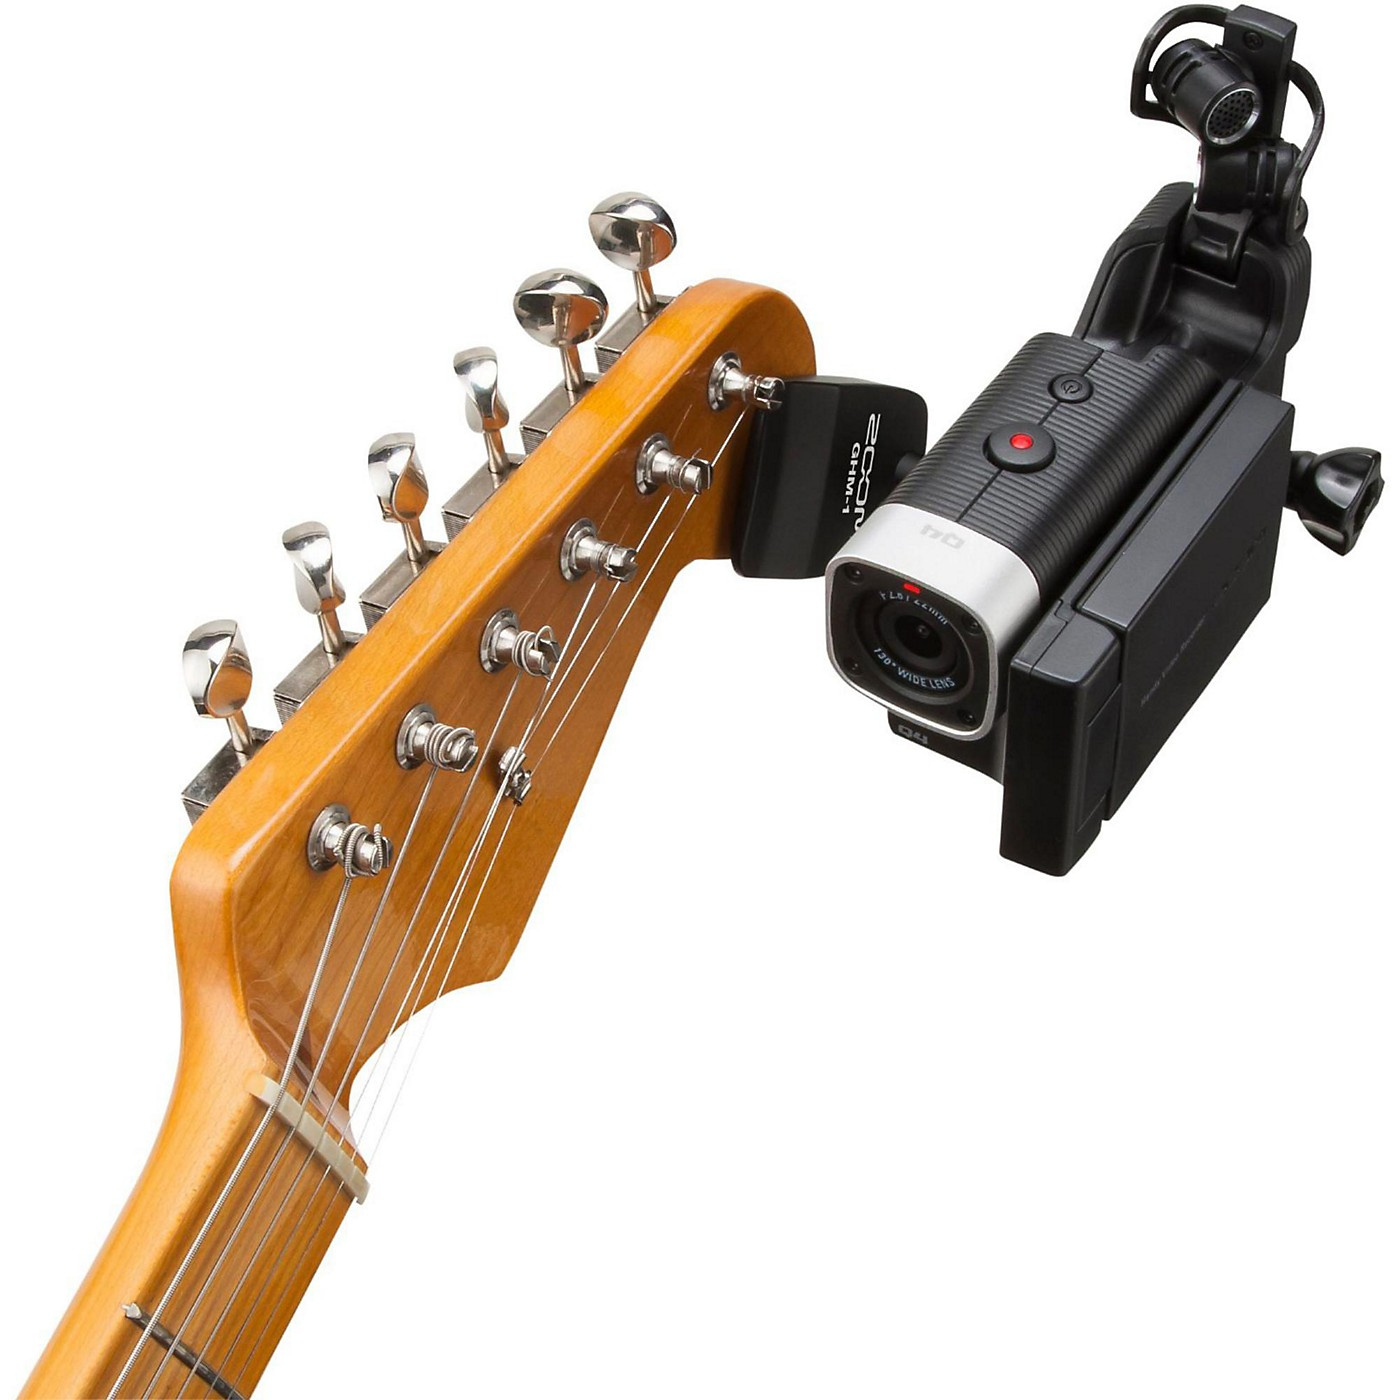 Zoom Zoom GHM-1 Guitar Headstock Mount for Action Cameras thumbnail